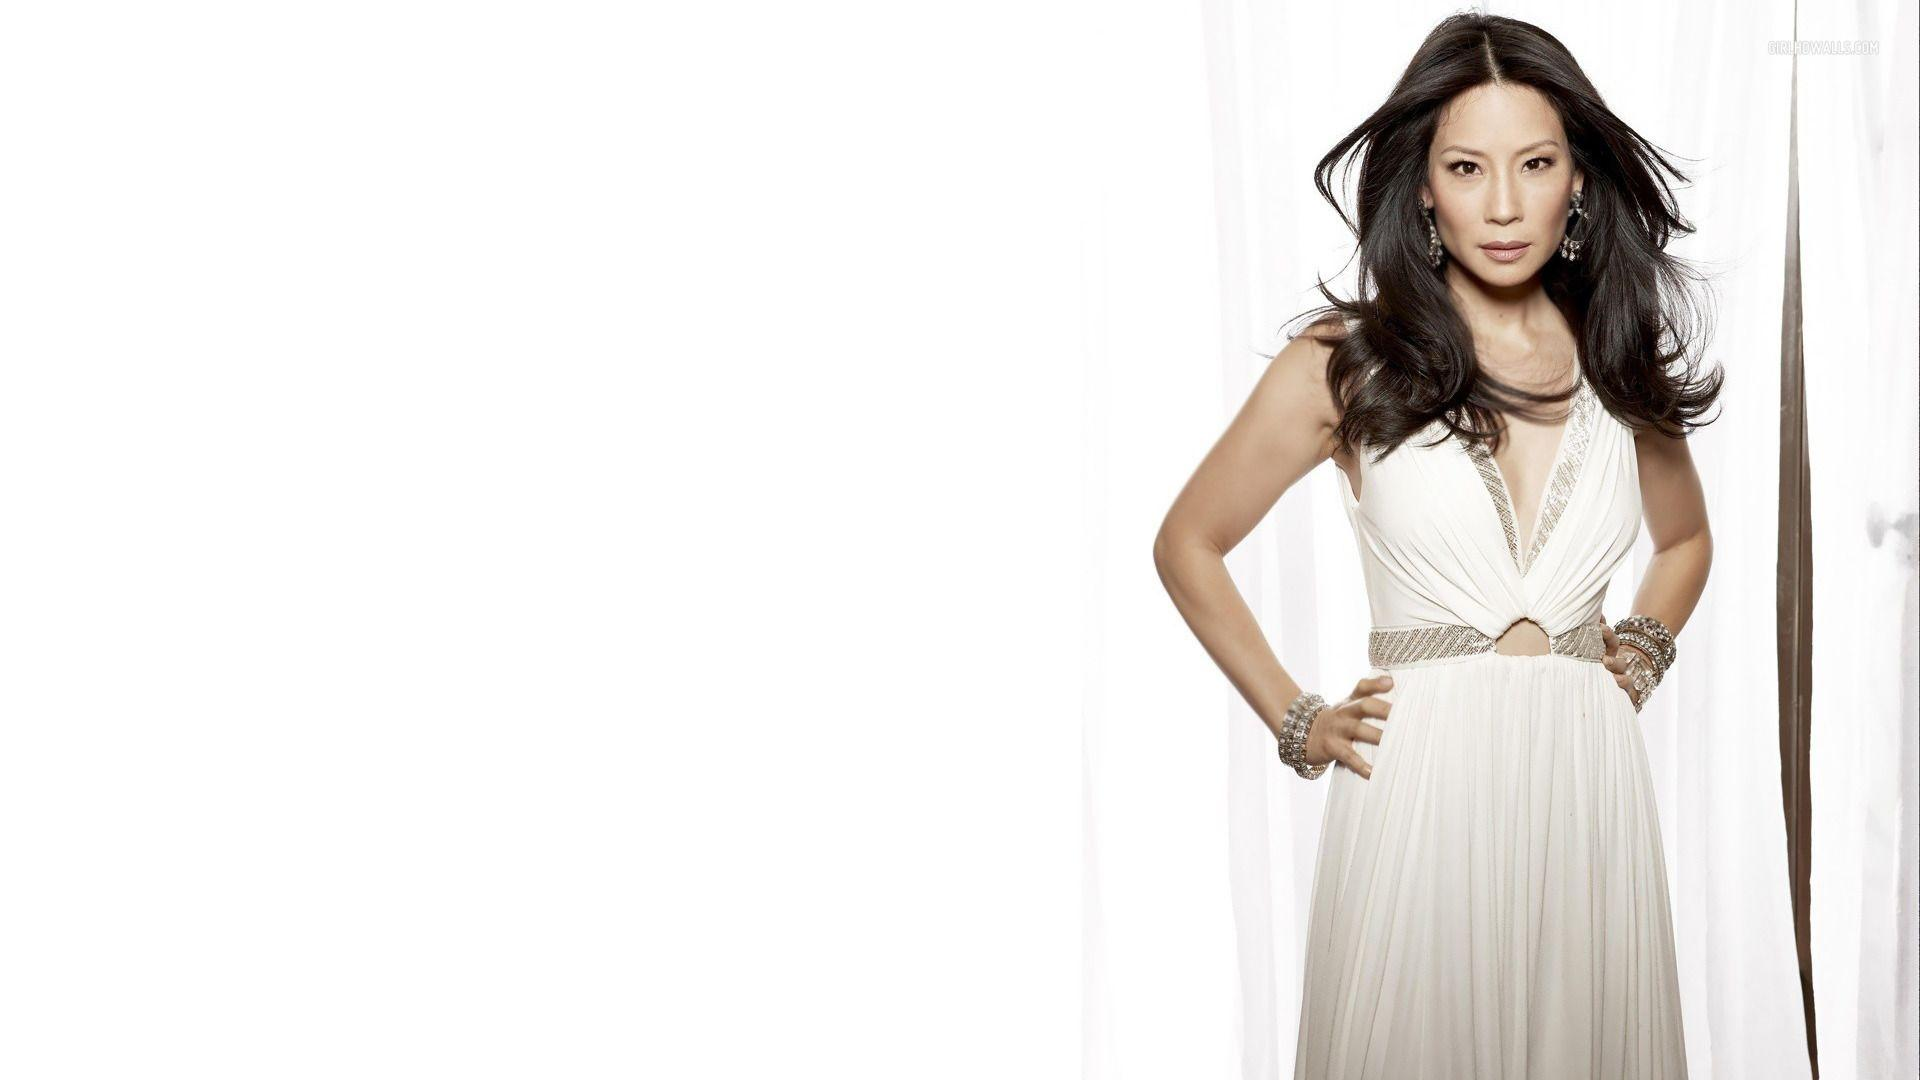 lucy liu free wallpaper - photo #1